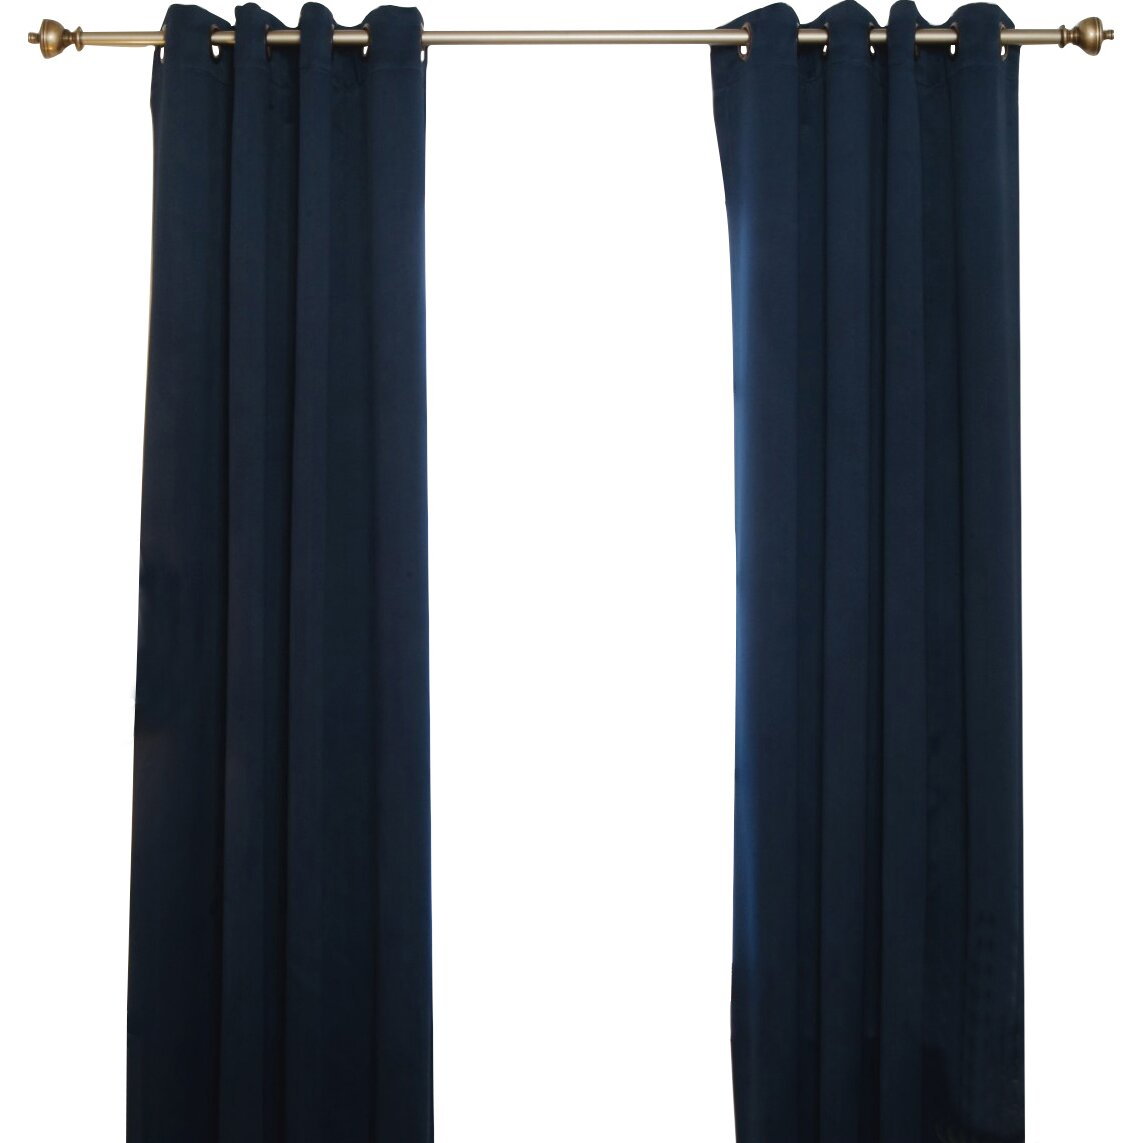 Blackout Curtain Grommet Top Blackout Thermal Curtain